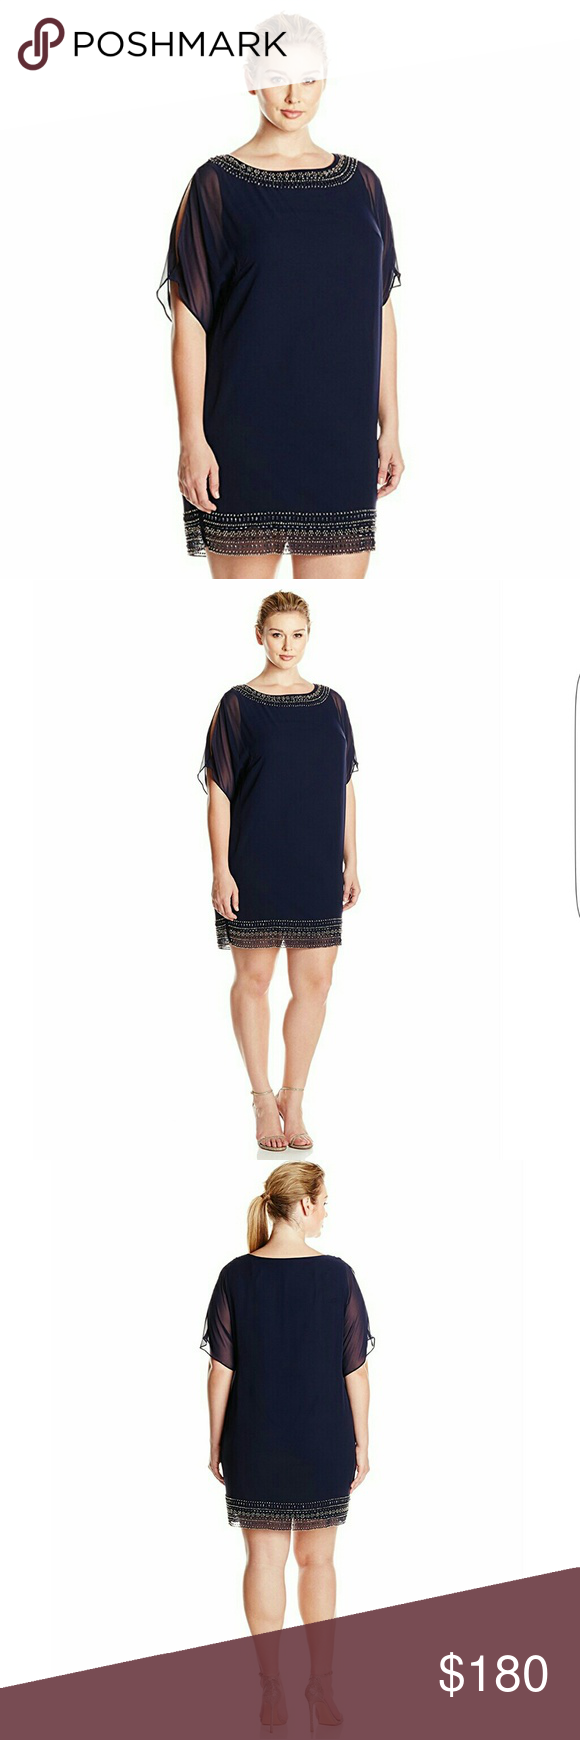 New xcape plus size bead formal dress polyester spandex